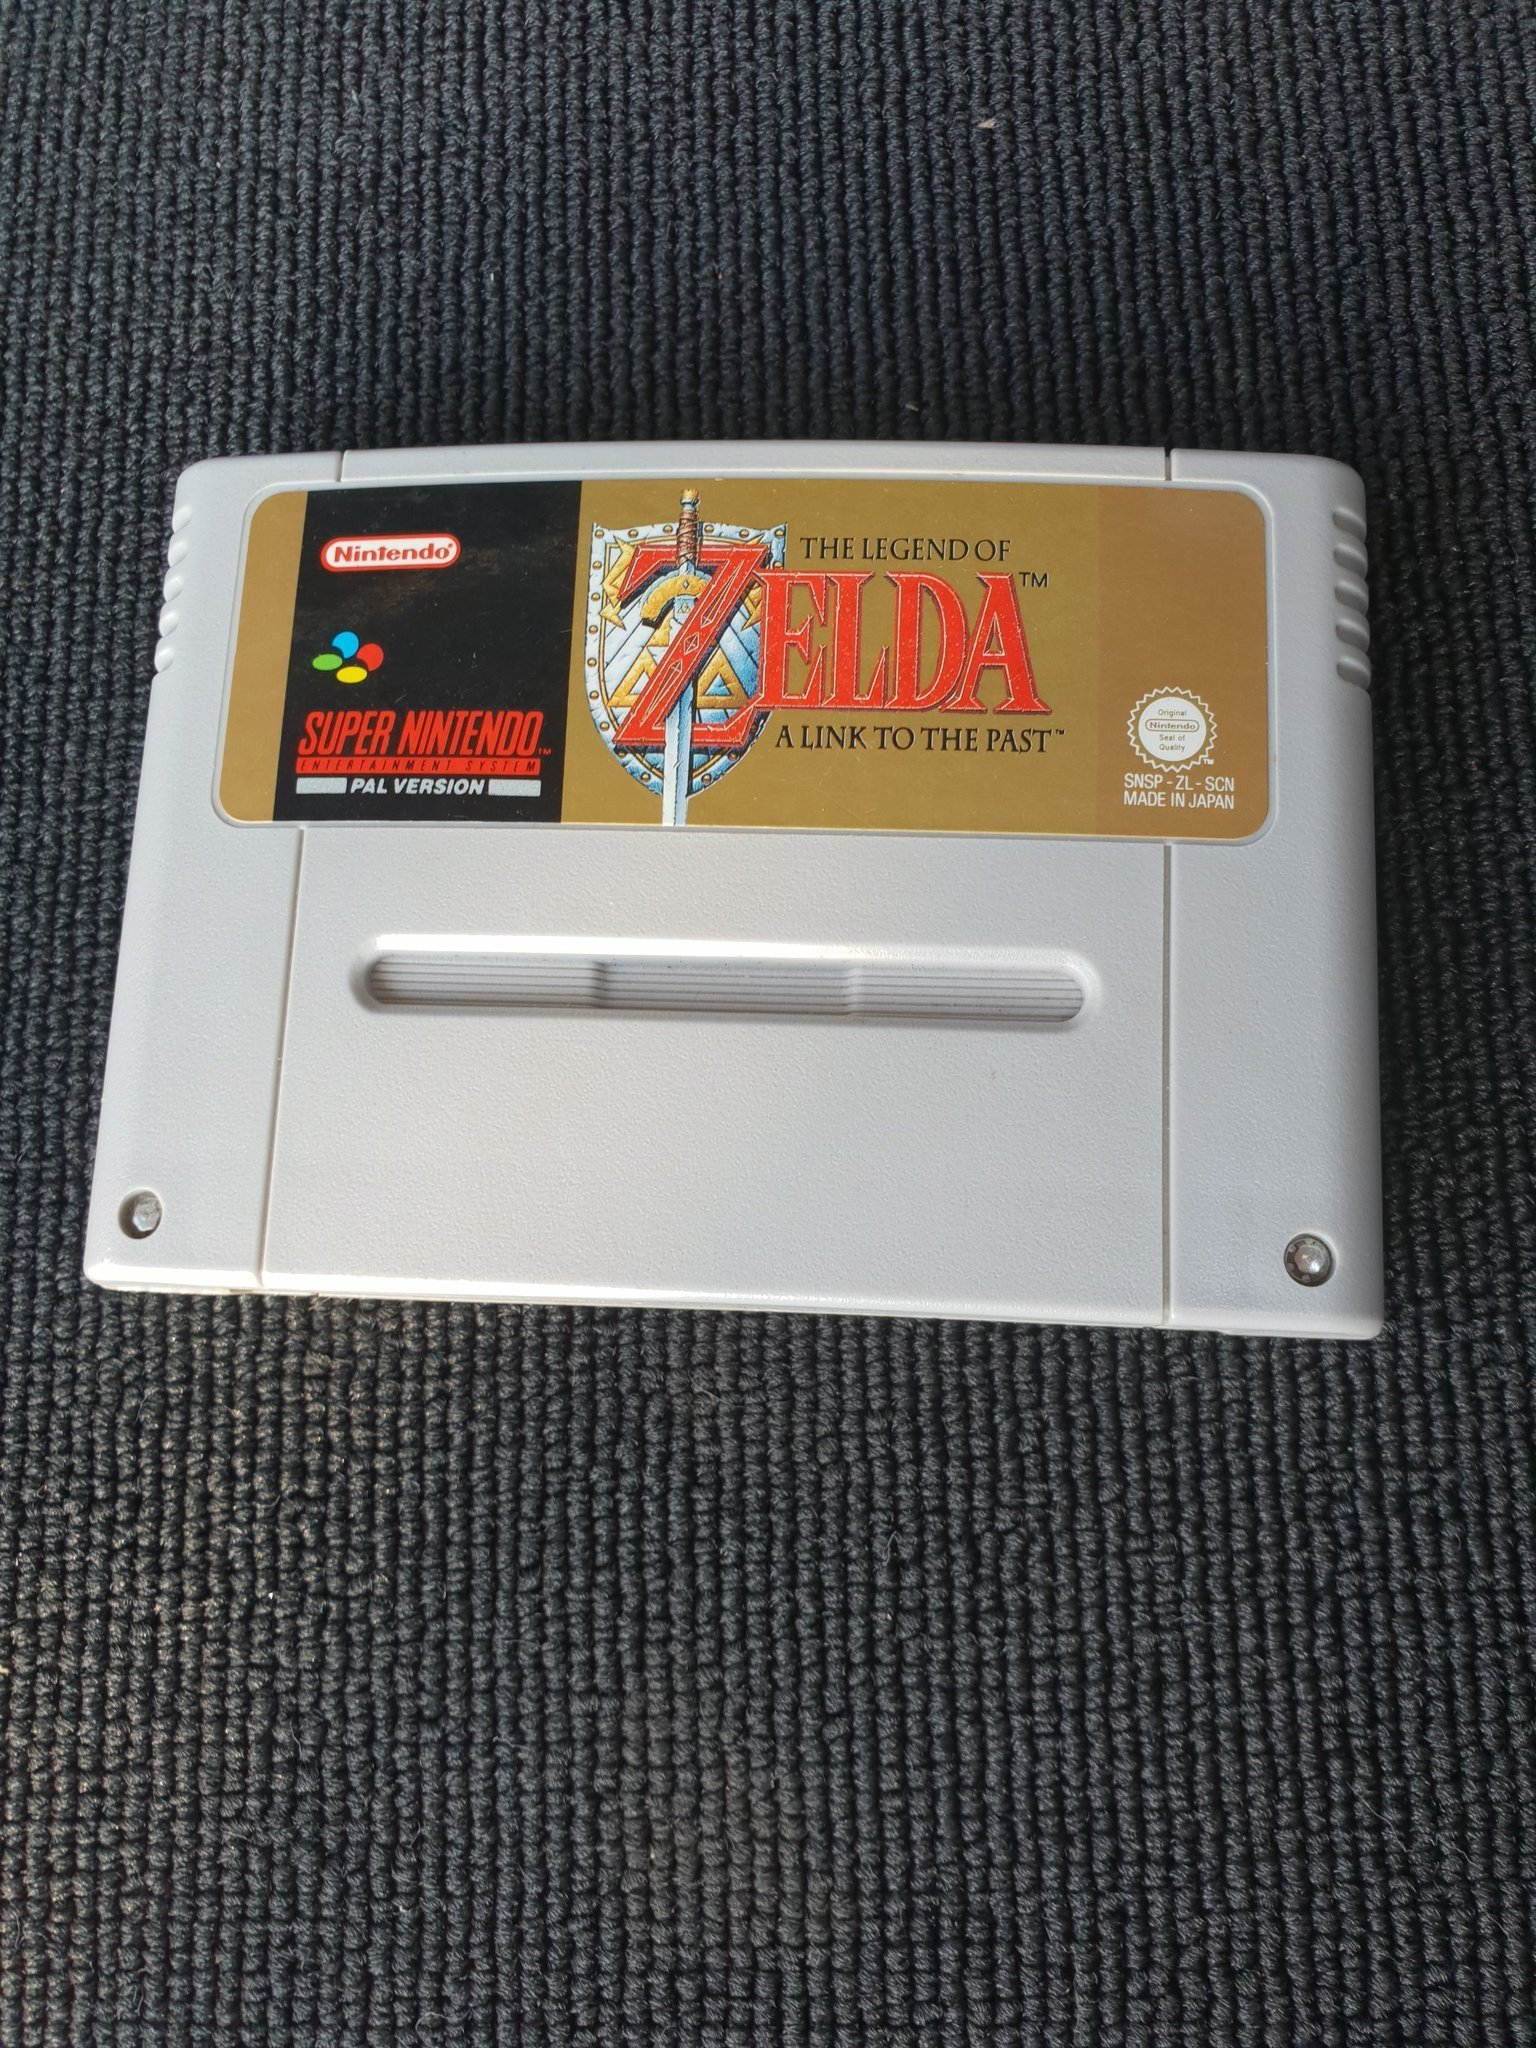 The Legend Of Zelda: A Link To The Past - Super Nintendo Snes